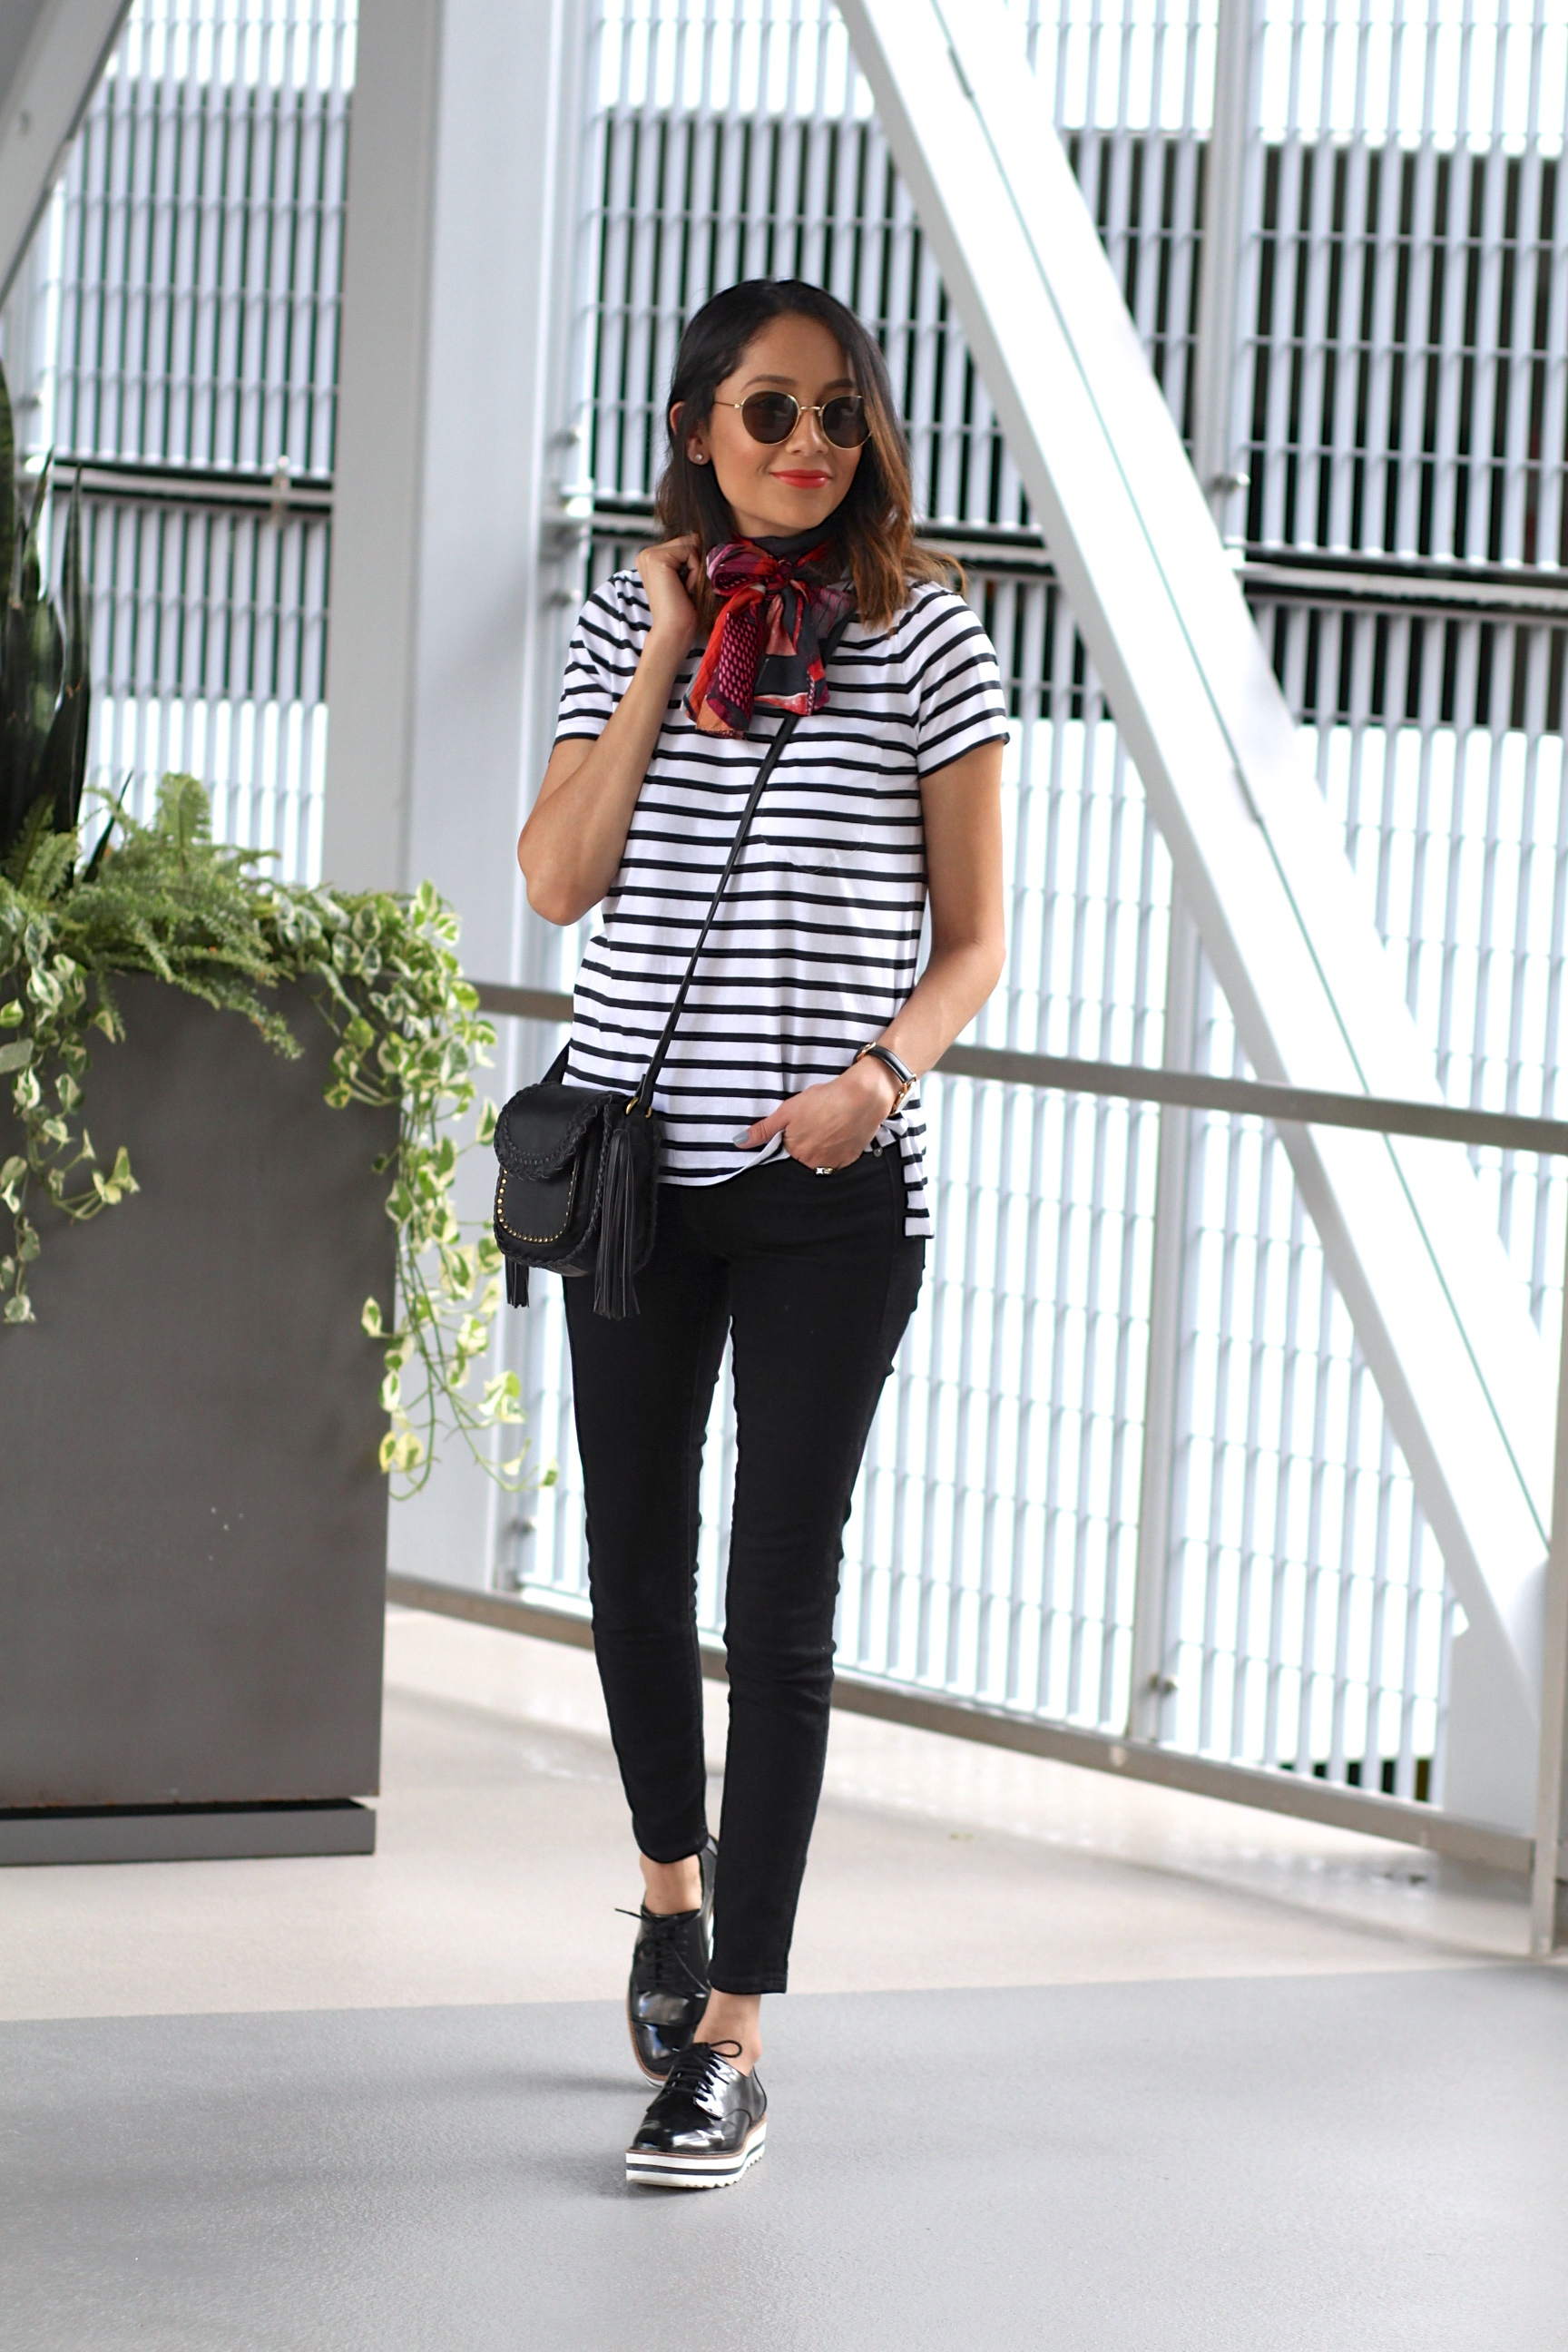 Lifestyle blogger Lilly Beltran in a casual look wearing black skinny jeans and a striped tee